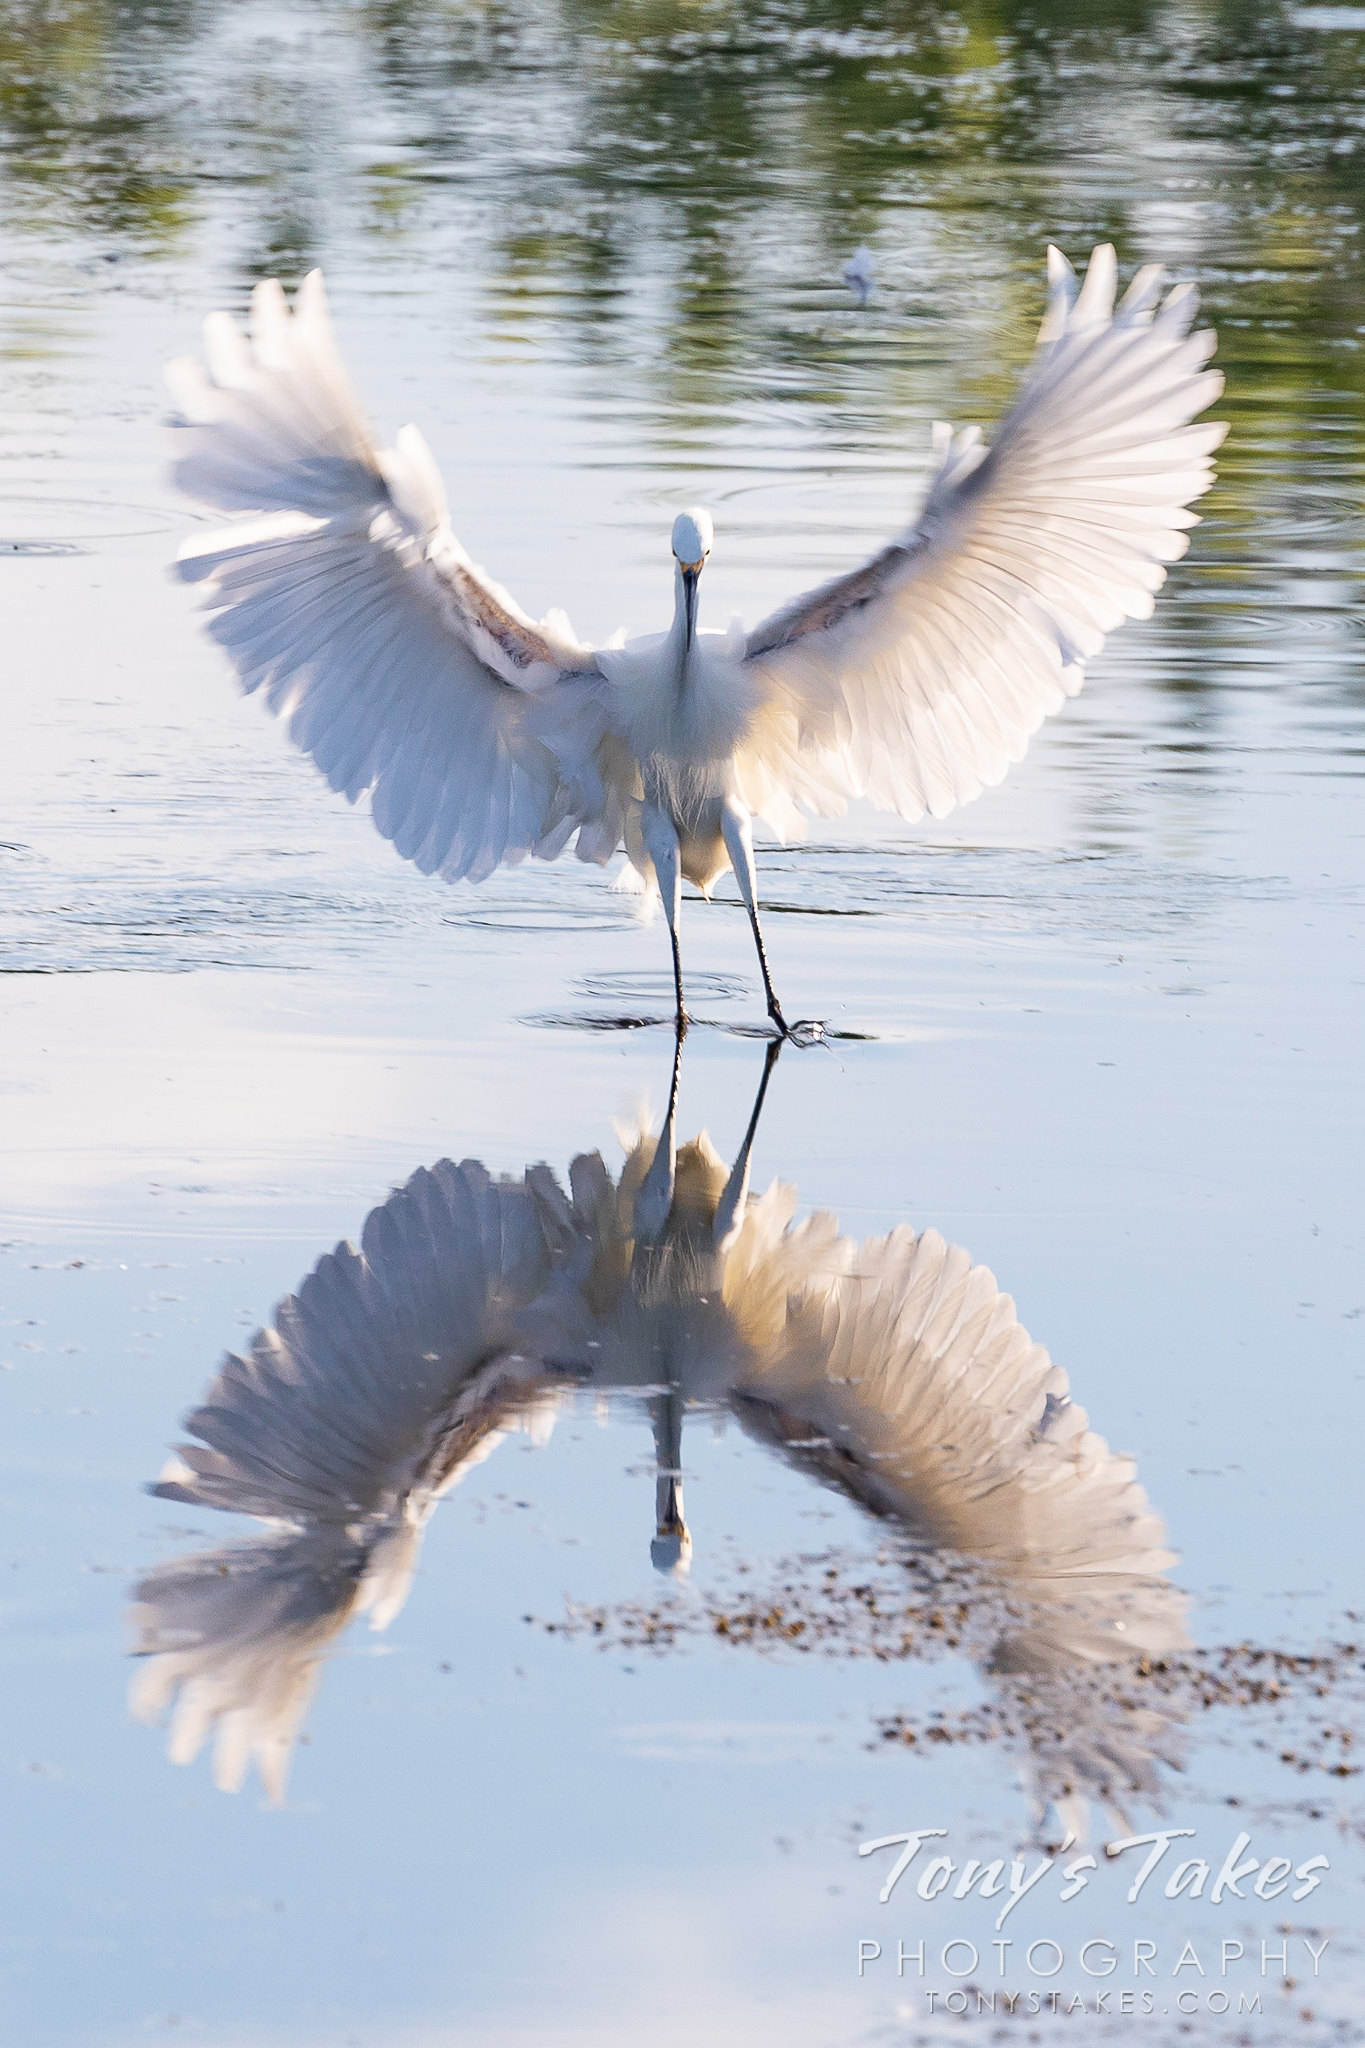 A snowy egret makes a landing that is reflected on the pond. (Tony's Takes)